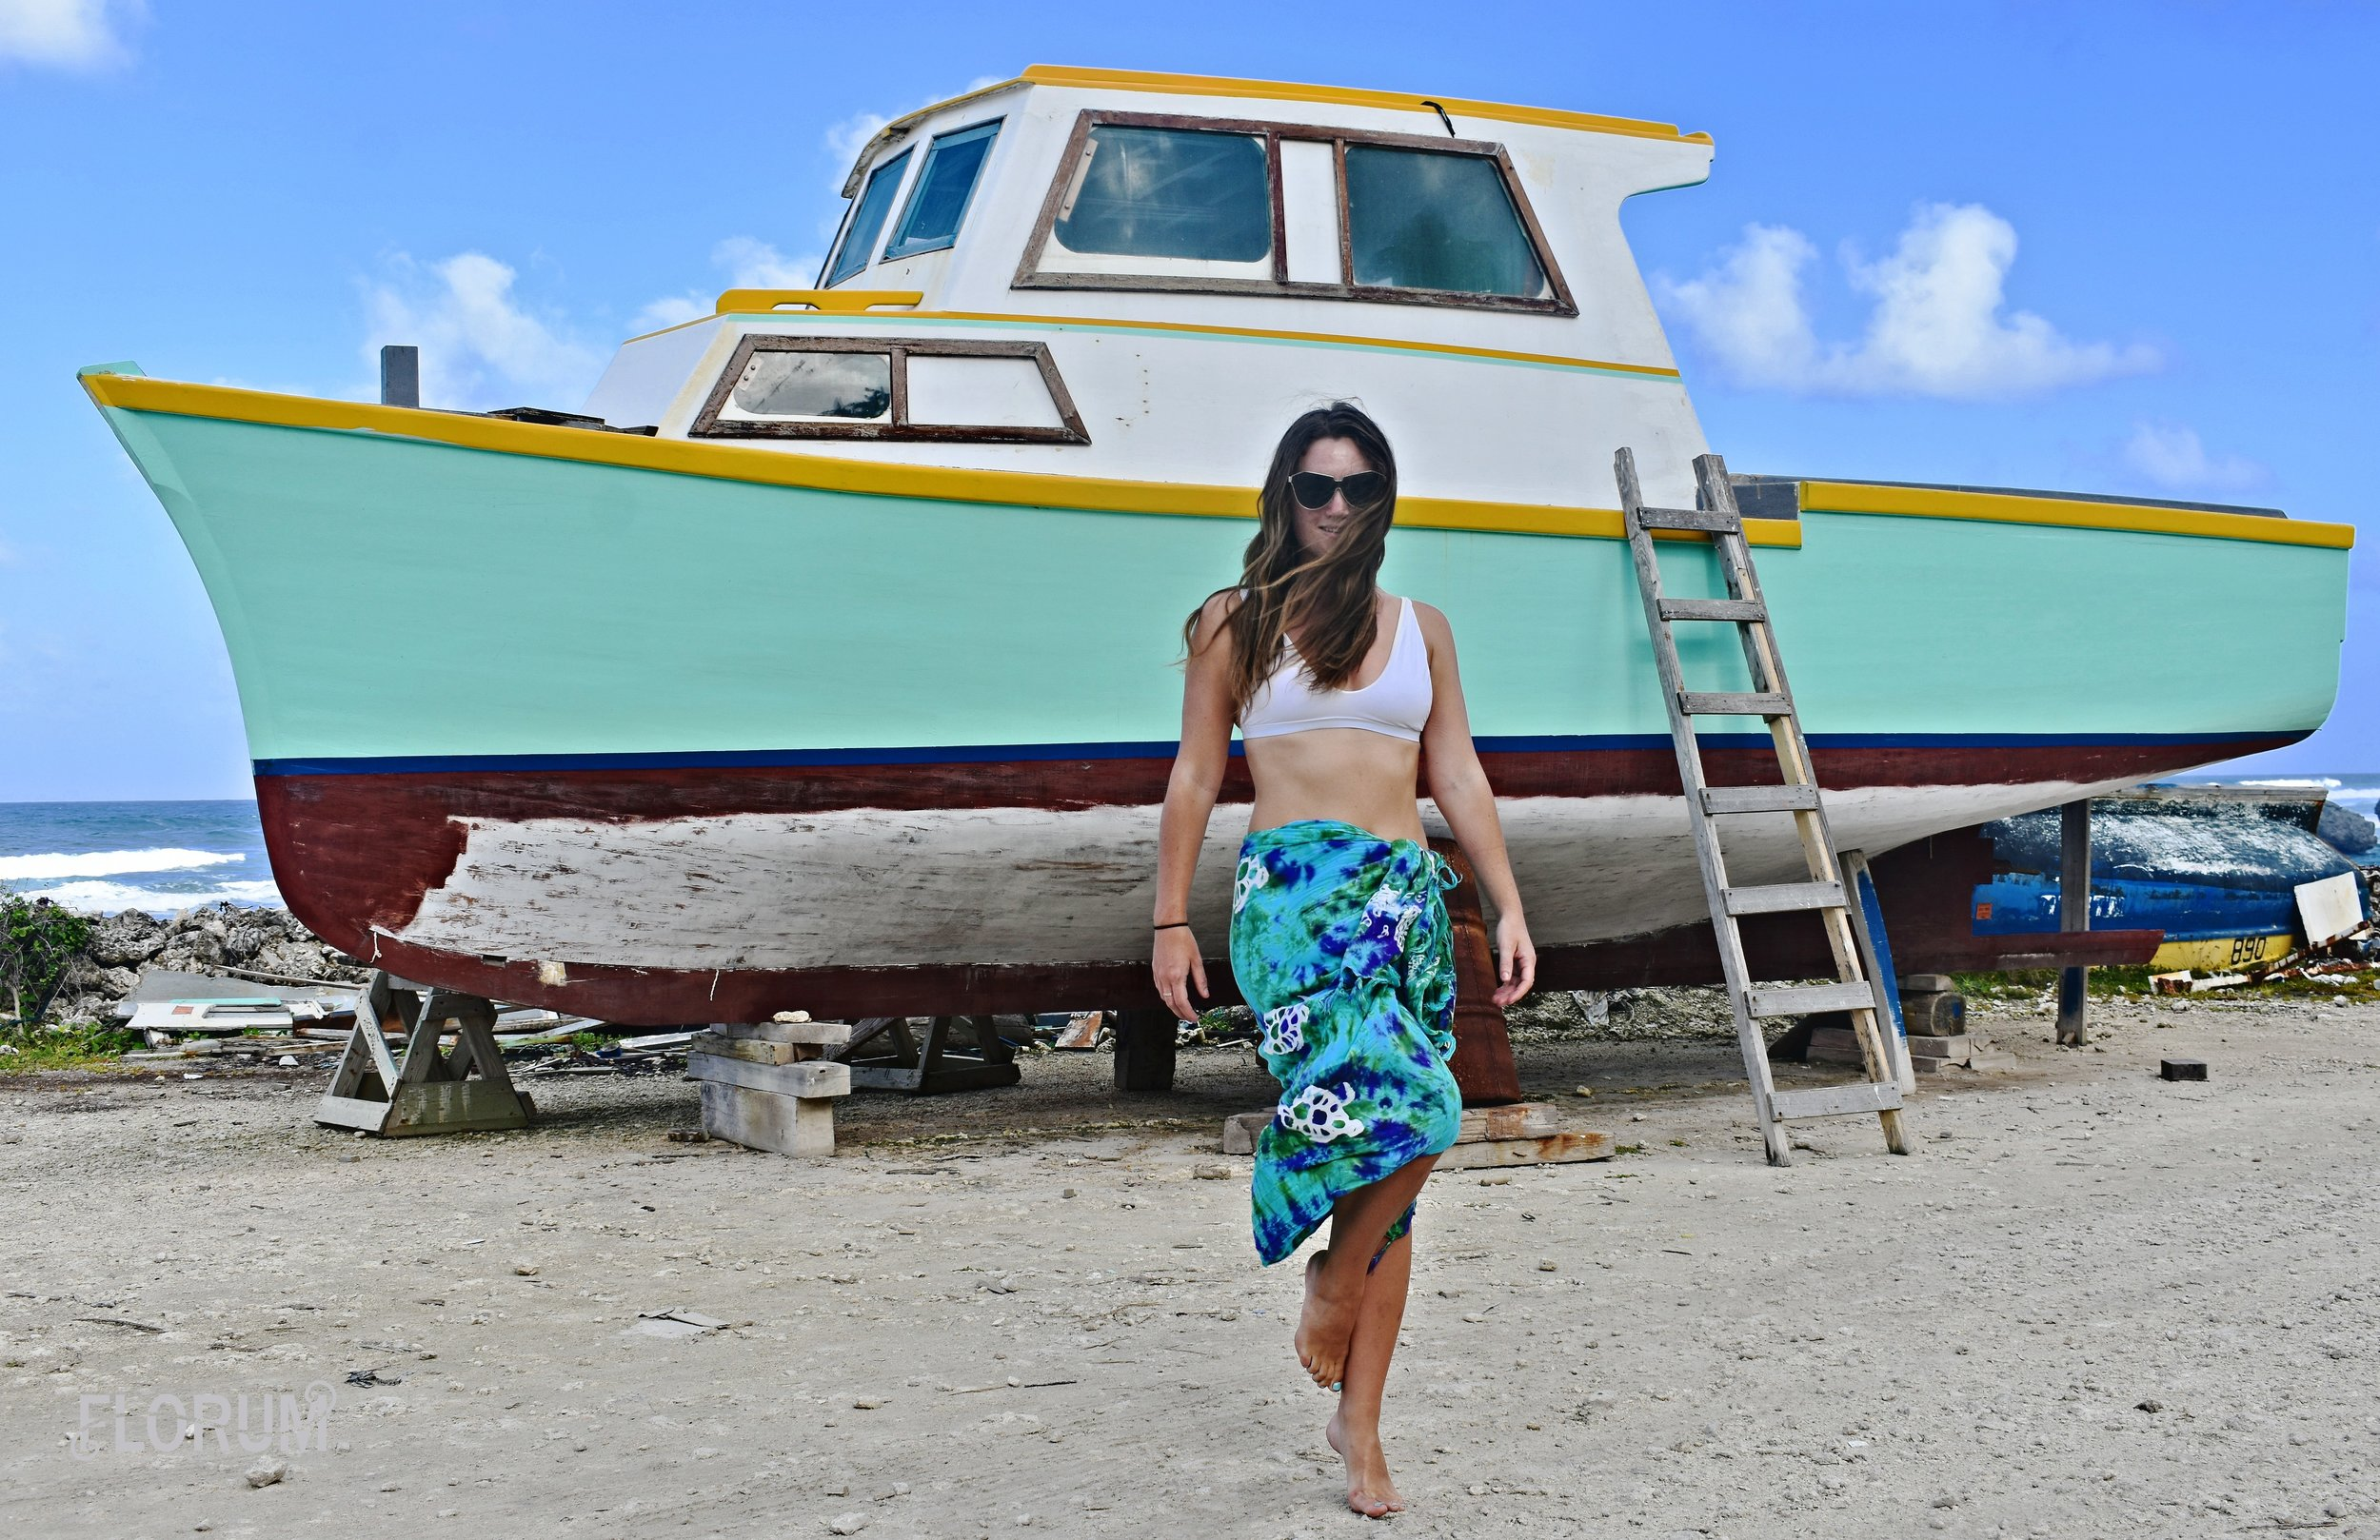 Barbados - Sea U Guest House - Green Travel for Florum Fashion Magazine by Noelle Lynne - allerton ethical swimwear responsible travel ethical living16.jpg